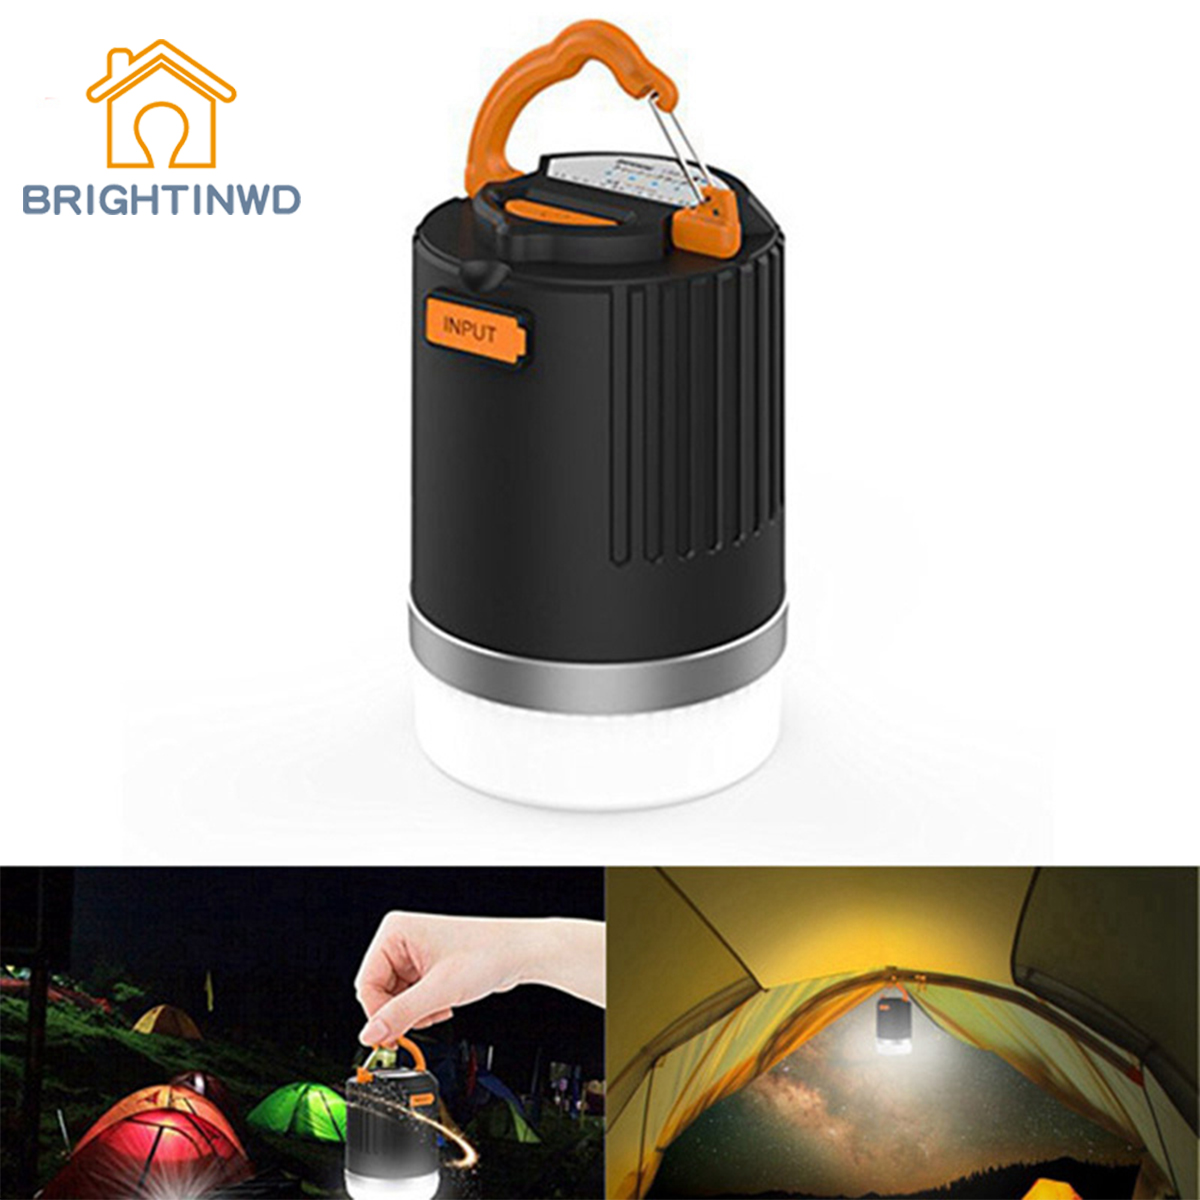 BRIGHTINWD Portable Outdoor Camping Lantern USB Rechargeable LED Light With 10400mAh Power Bank For Phone Charging Tent Lanterns original romoss sense4 dual usb 10400mah power bank